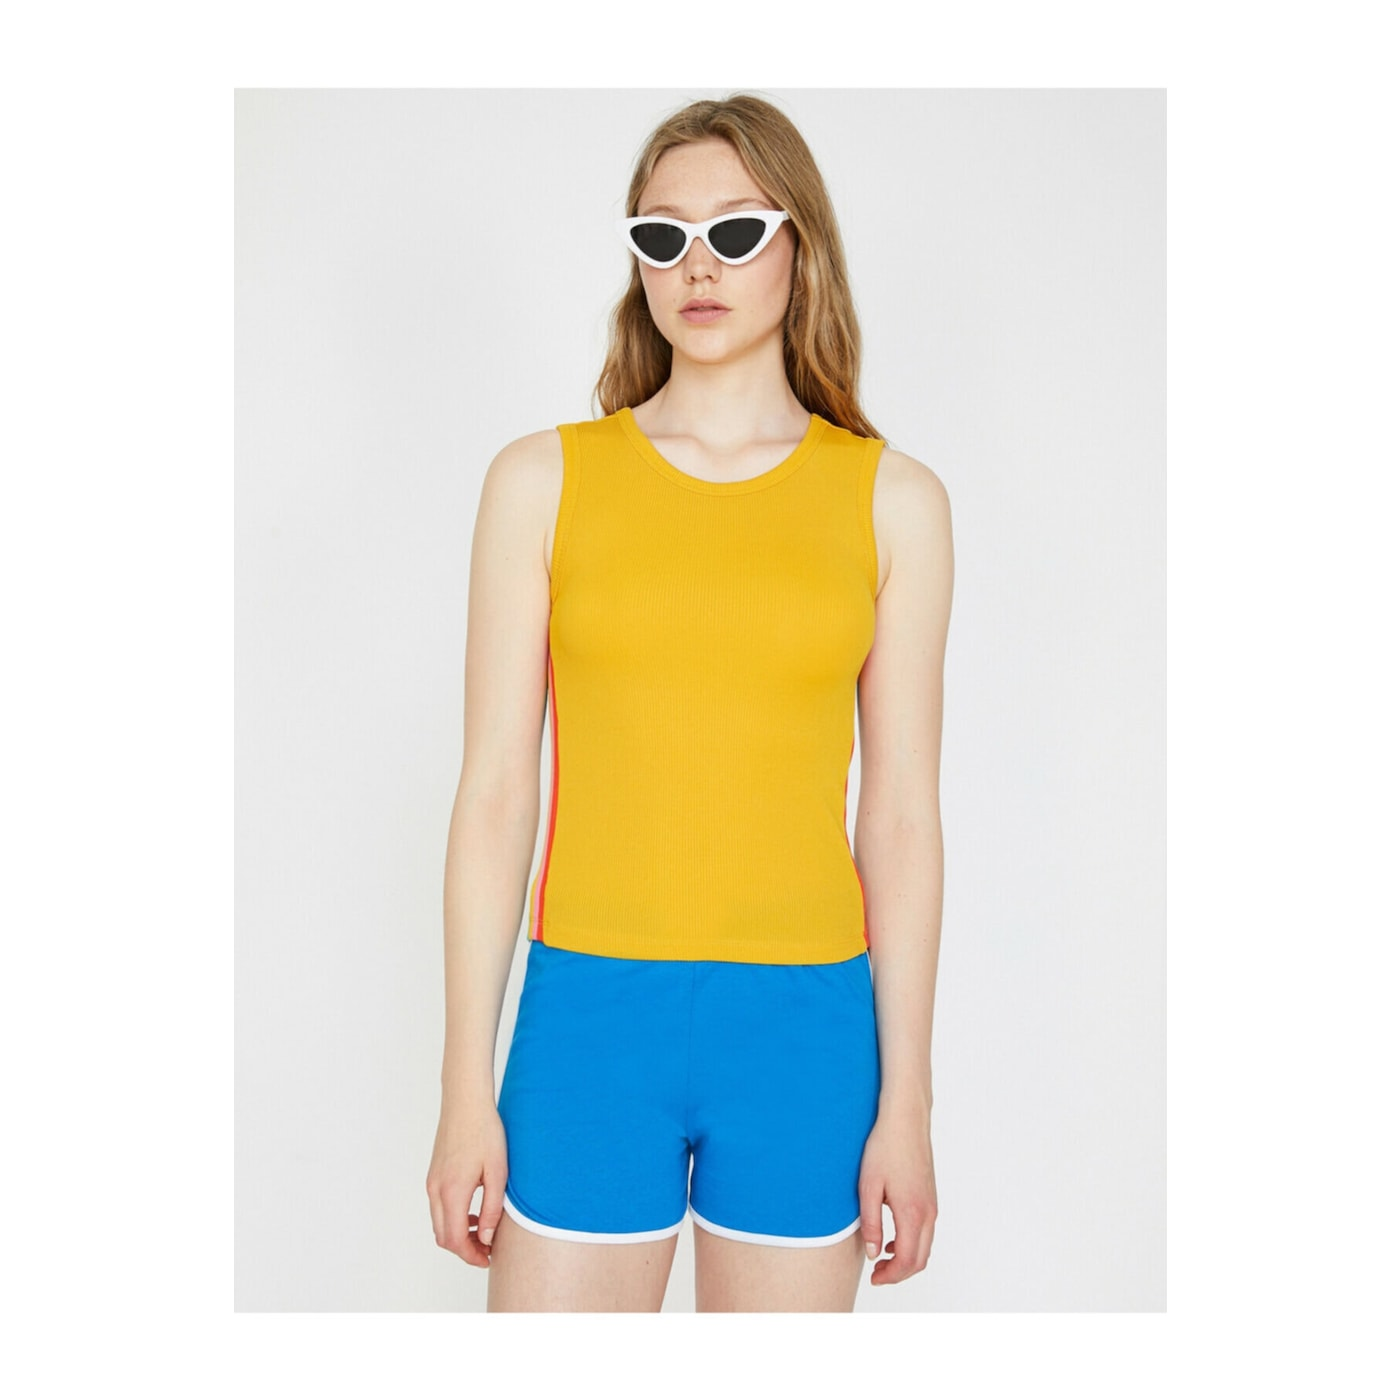 Koton Women's Yellow Crew Neck Sleeveless Color-Blocked Tank Top